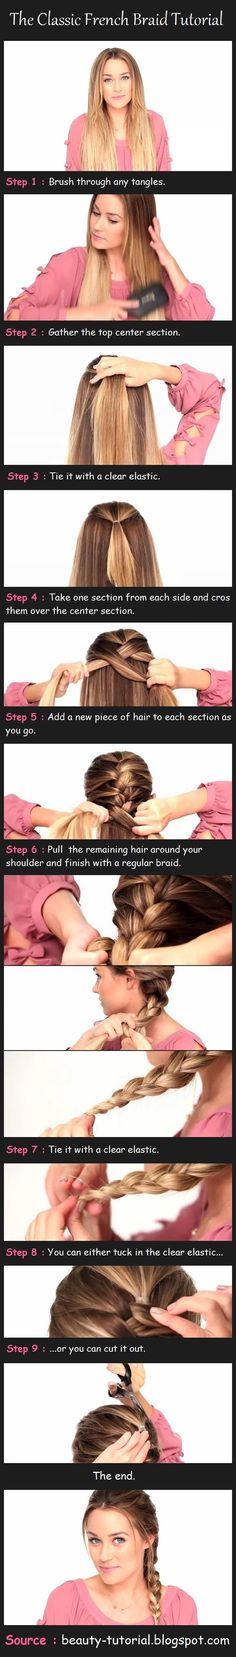 Like the rubberband trick, finally might be able to learn how to braid my hair!! lol